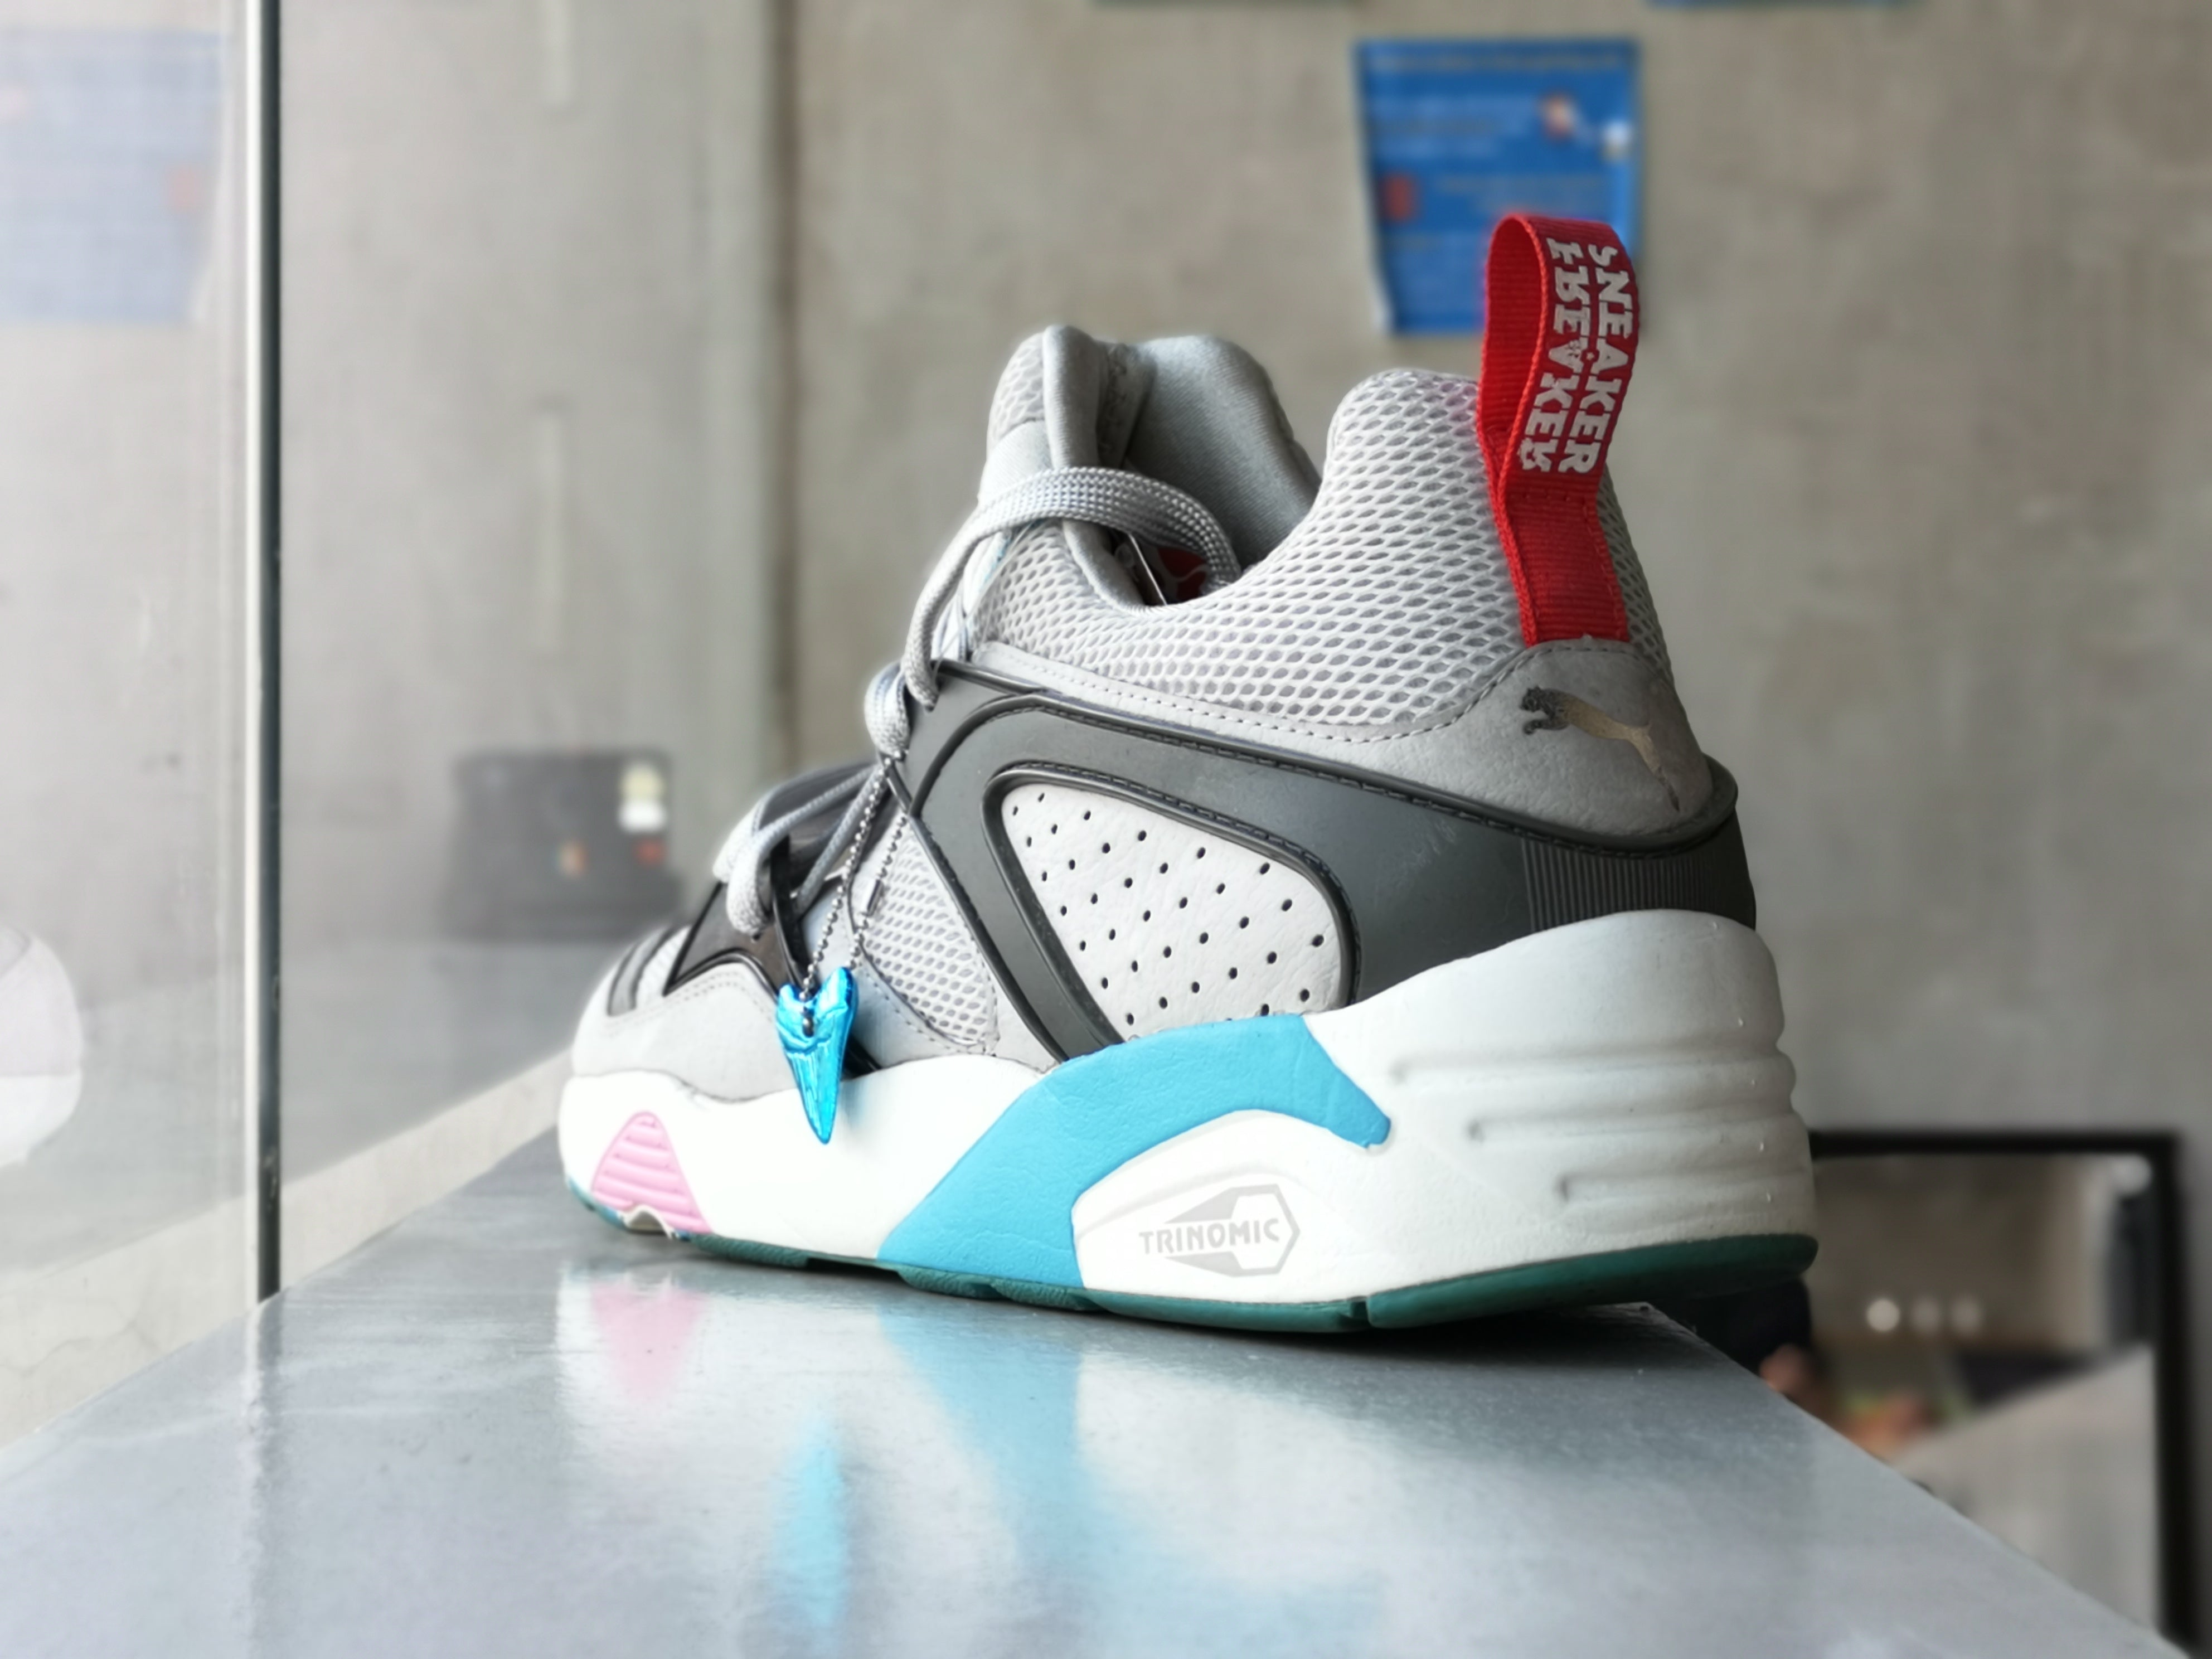 PUMA BLAZE OF GLORY GREAT WHITE X SNEAKER FREAKER